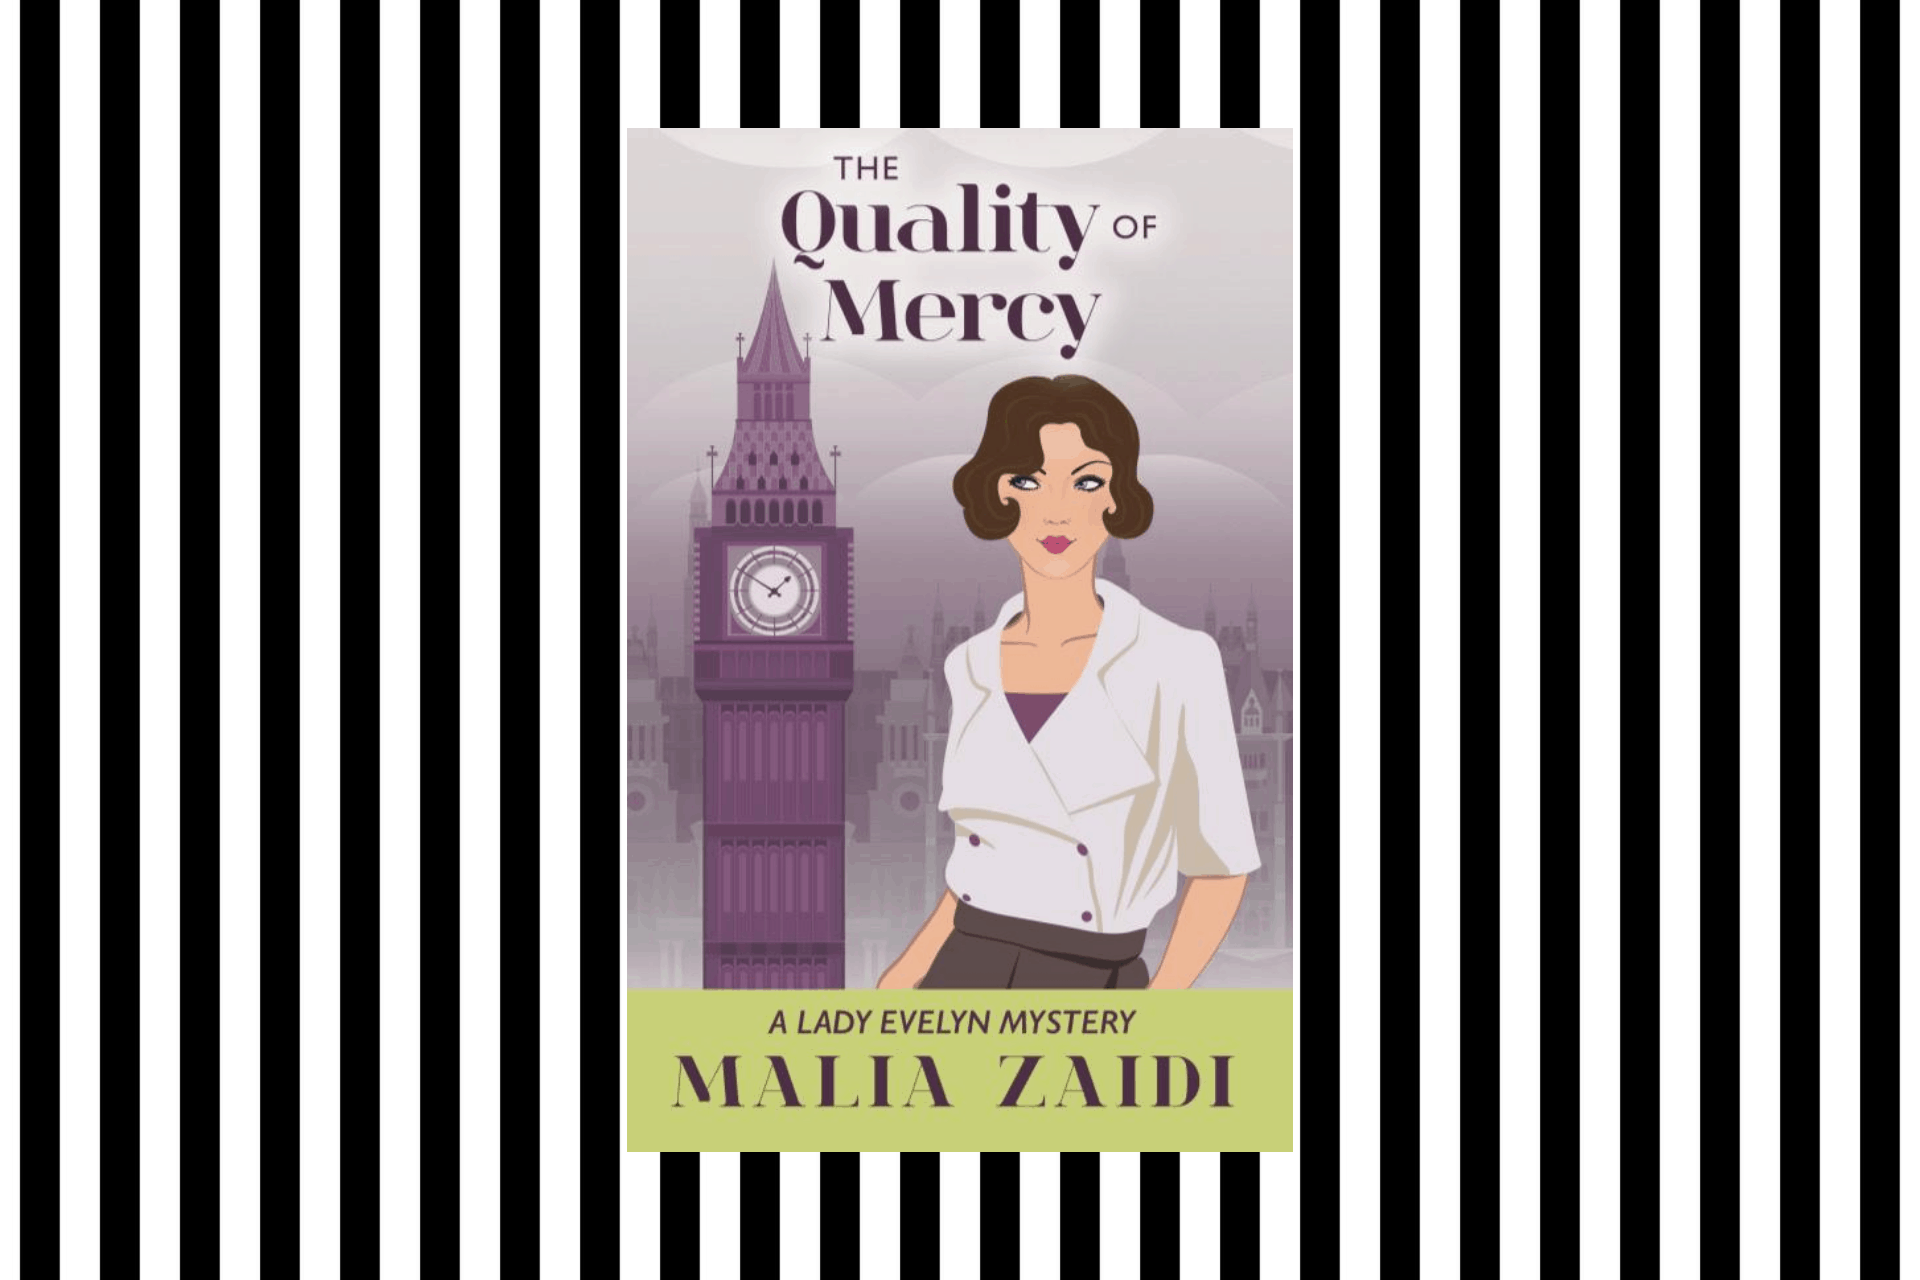 The cover of The Quality of Mercy by Malia Zaidi